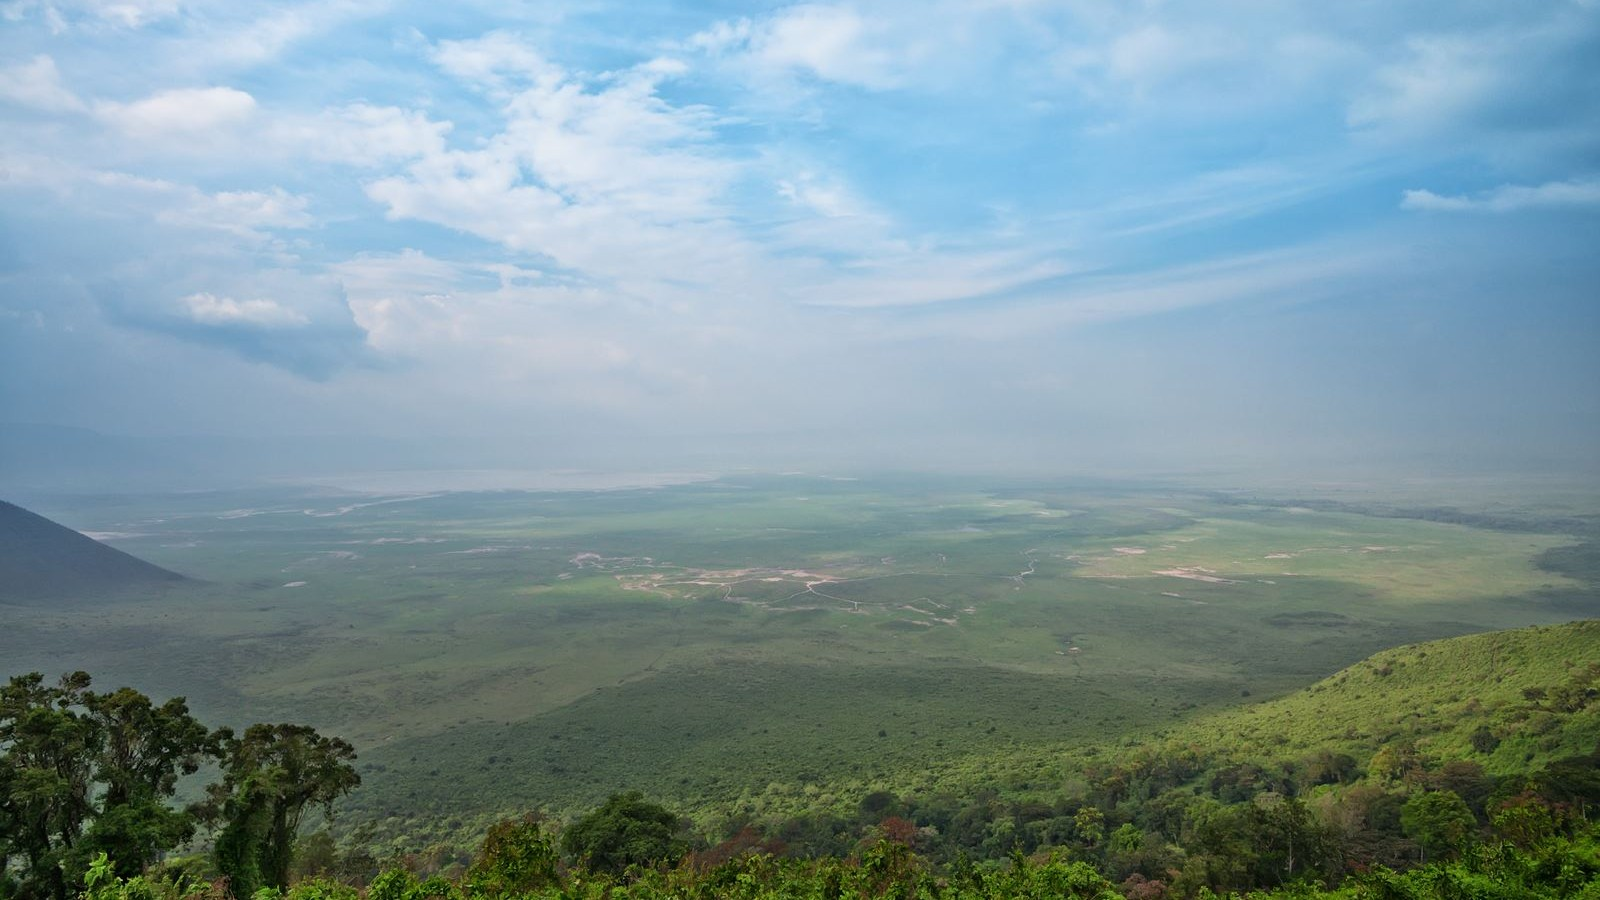 Scenic view from the rim of Ngorongoro crater, Tanzania